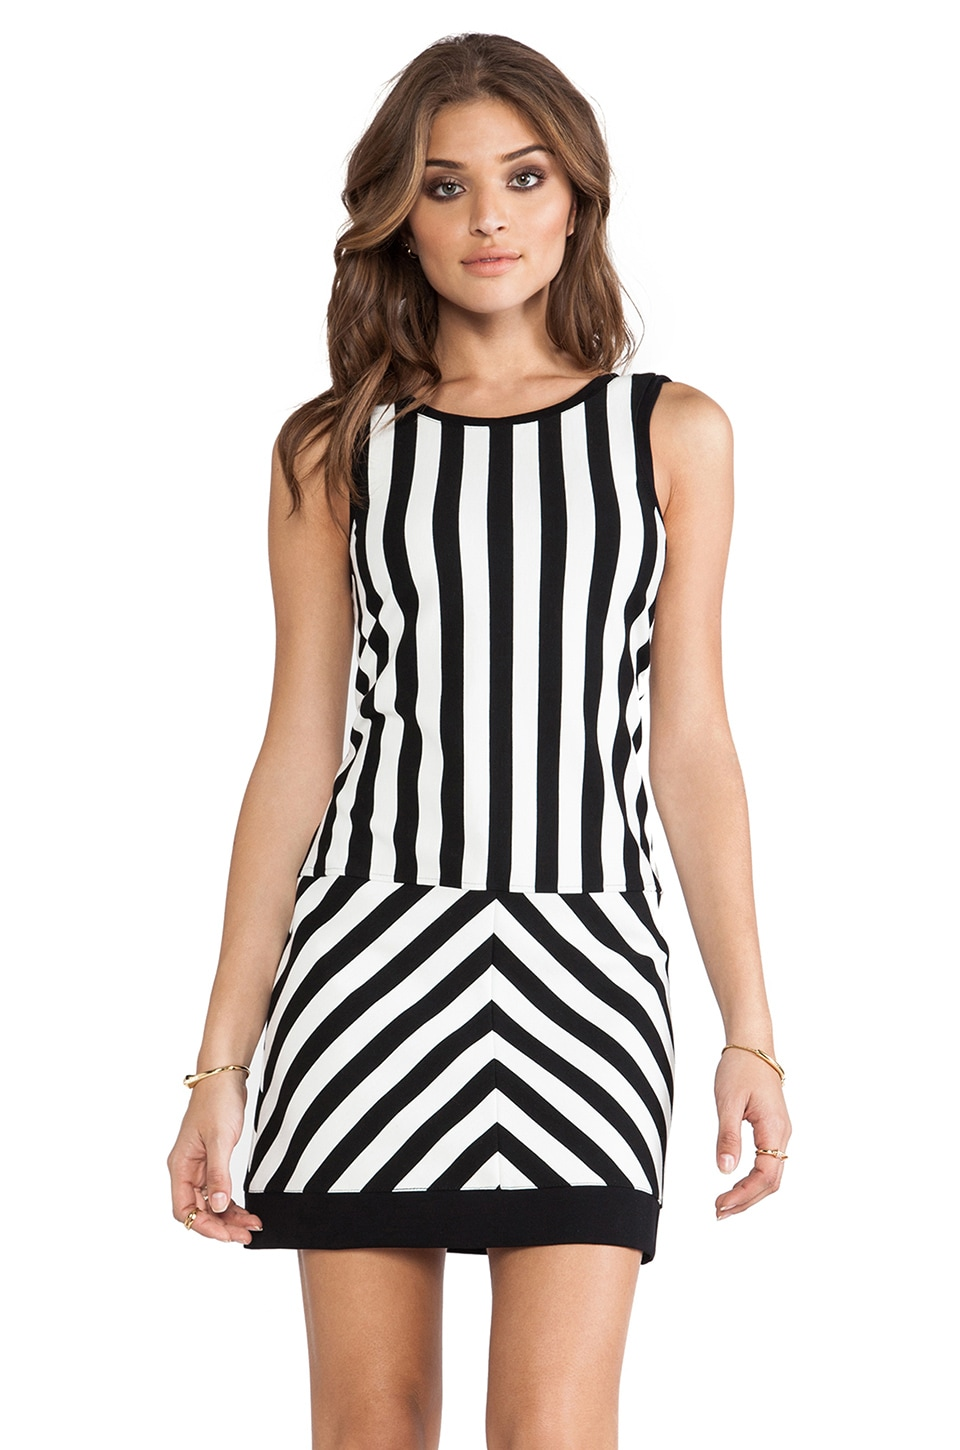 Sanctuary Mondrian Dress in Black & White